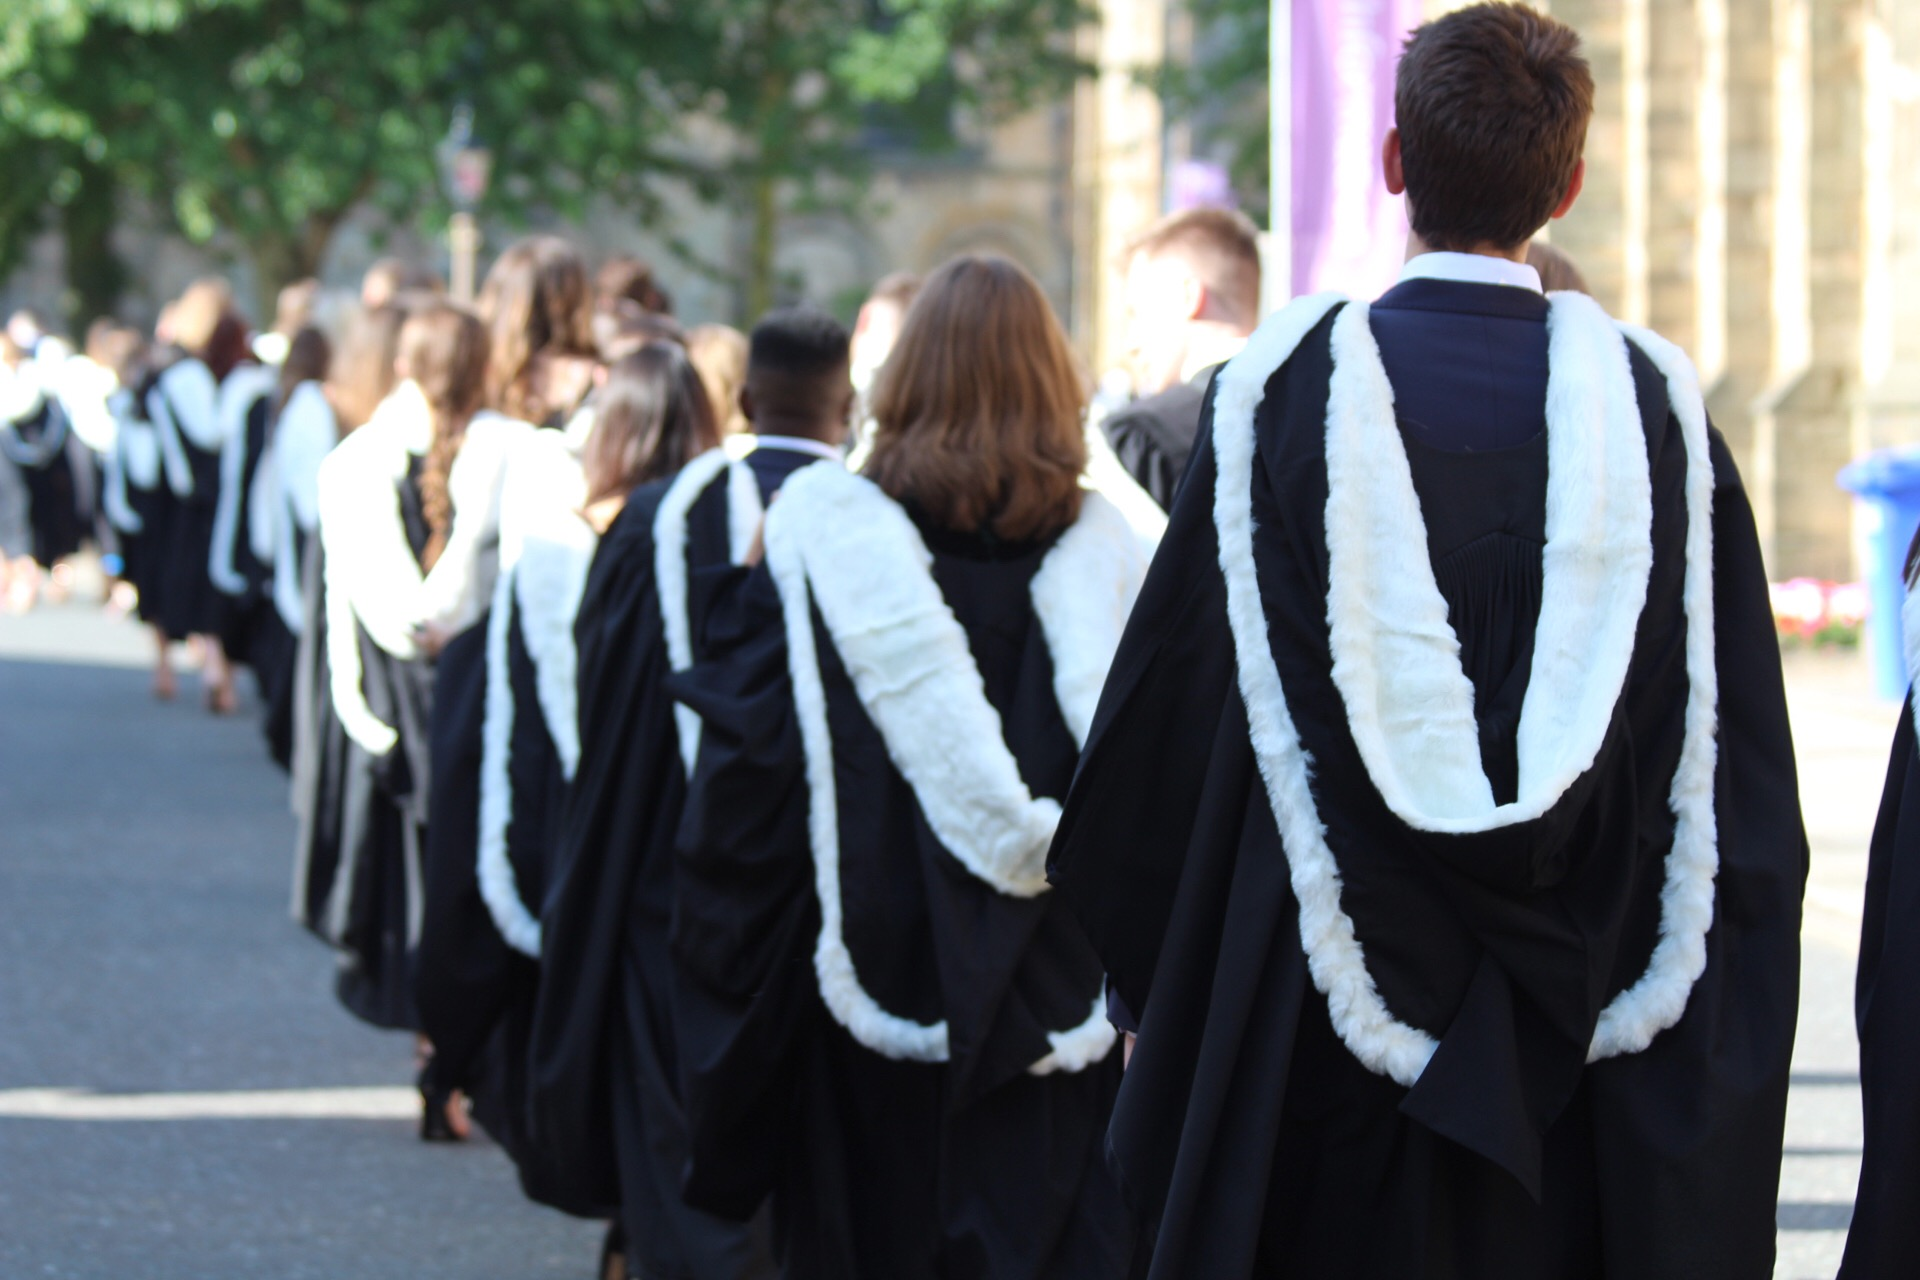 Students walking out of Durham cathedral wearing graduation robes